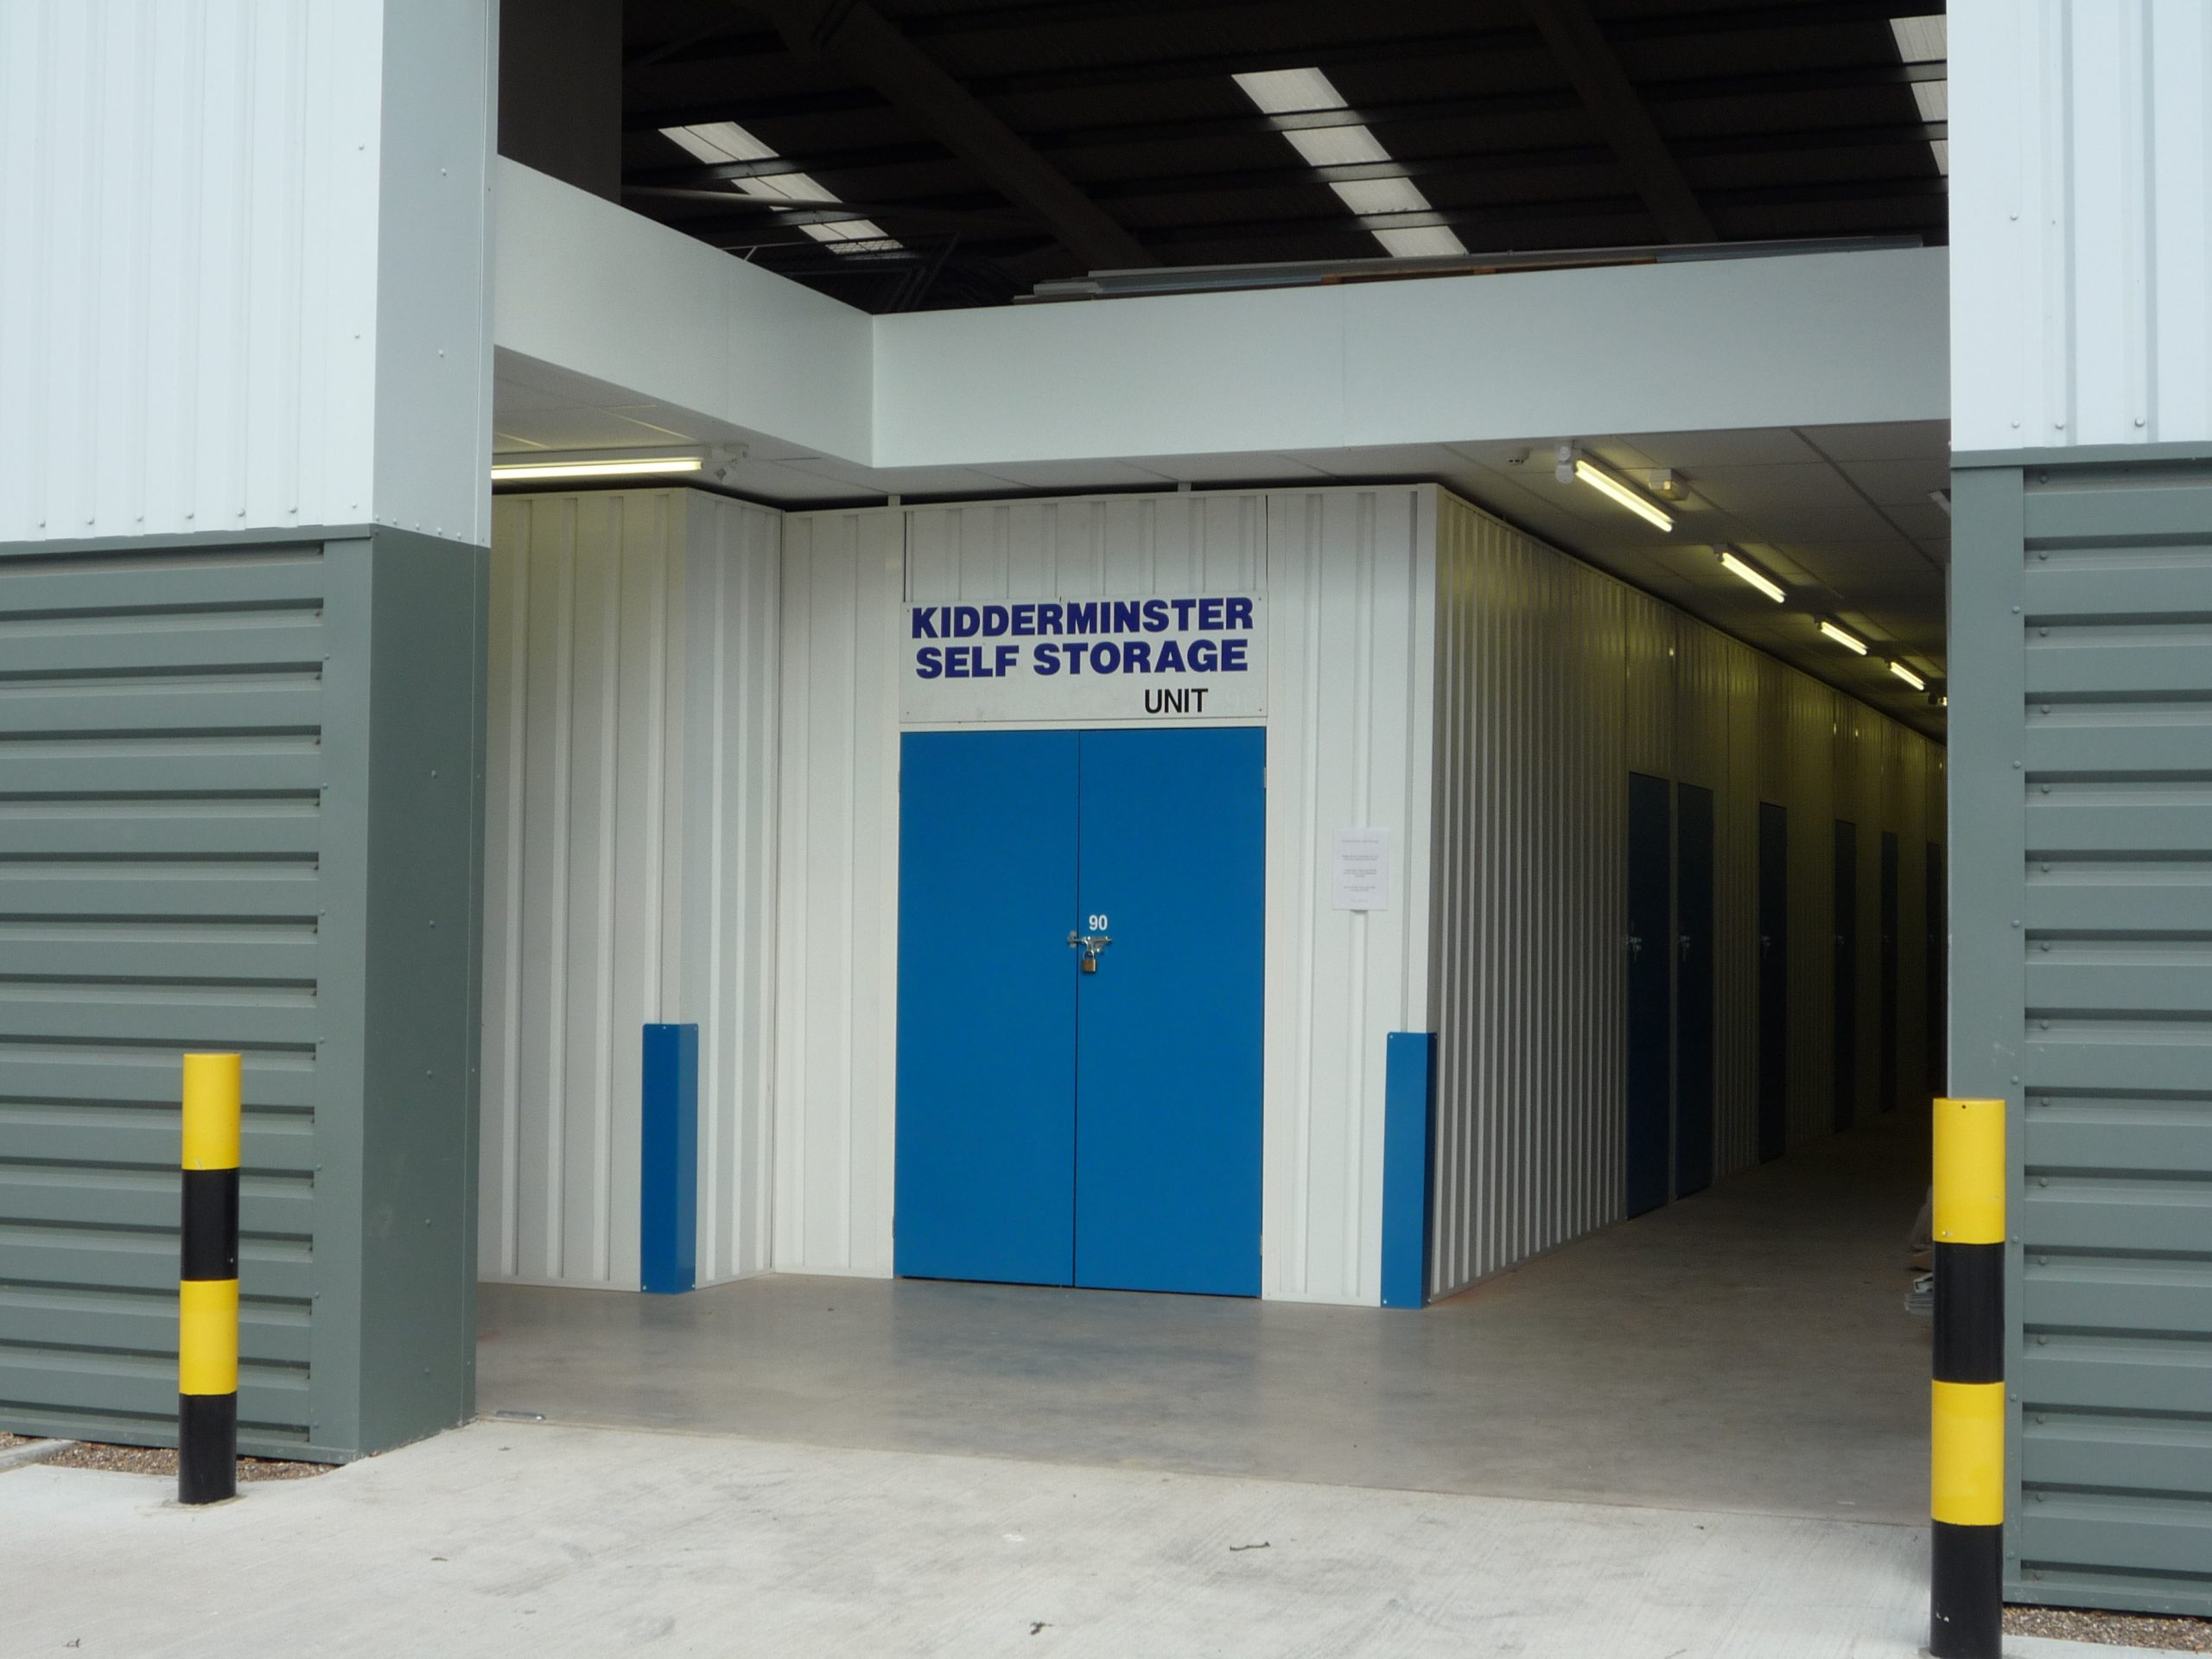 Kidderminster_Self_Storage00001